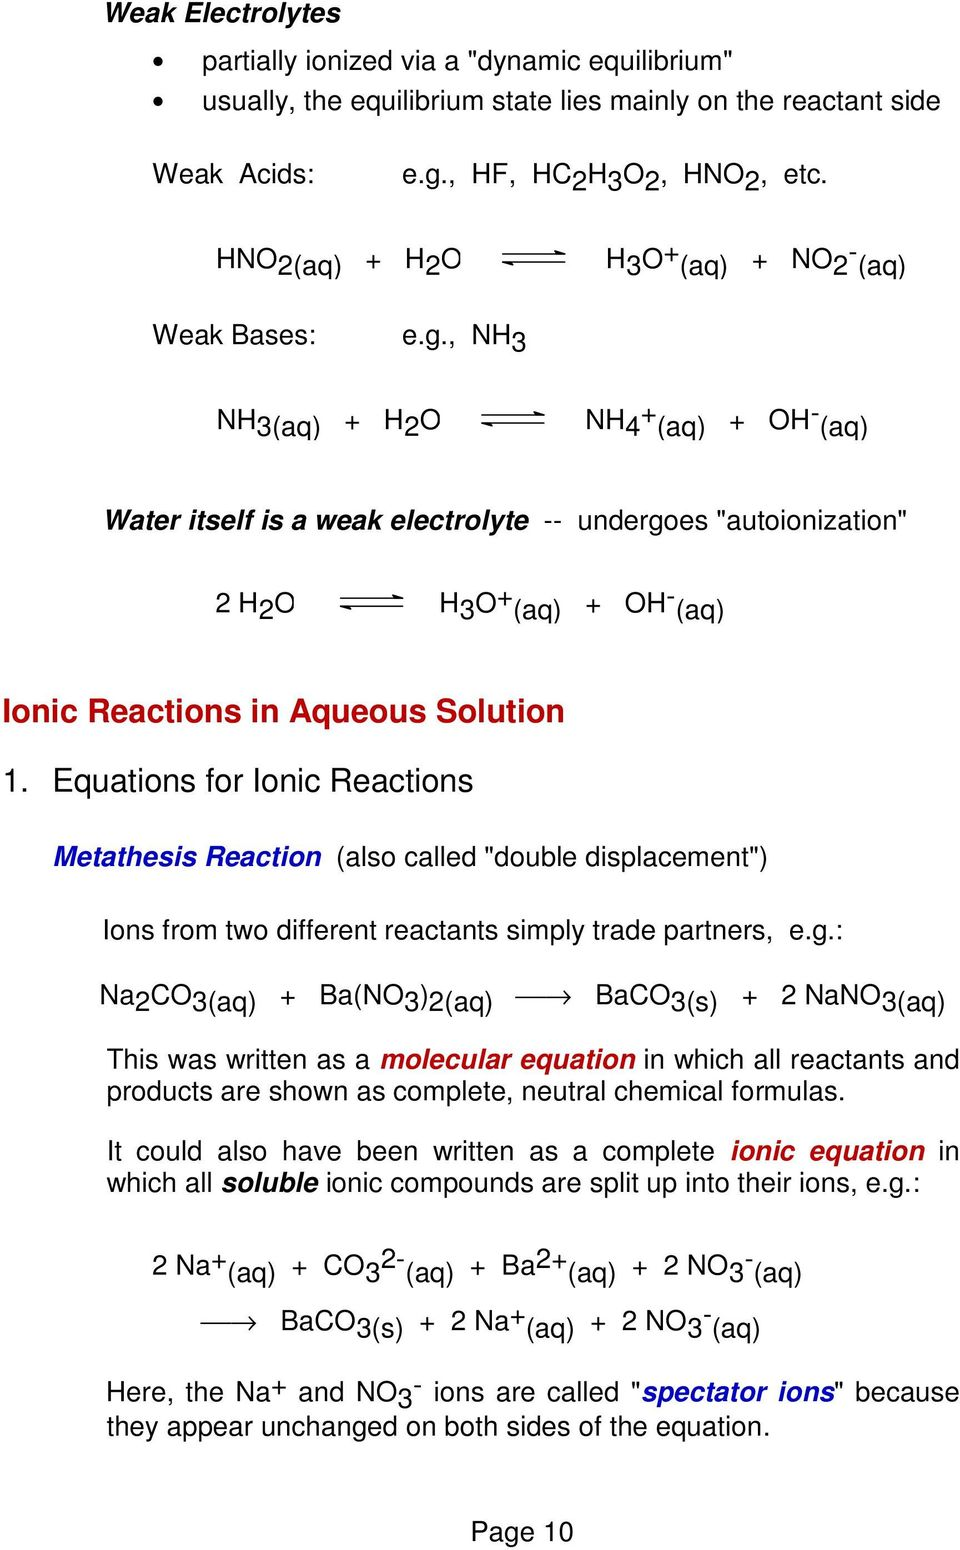 ", NH 3 NH 3(aq) + H 2 O NH 4 + (aq) + OH - (aq) Water itself is a weak electrolyte -- undergoes ""autoionization"" 2 H 2 O H 3 O + (aq) + OH- (aq) Ionic Reactions in Aqueous Solution 1."